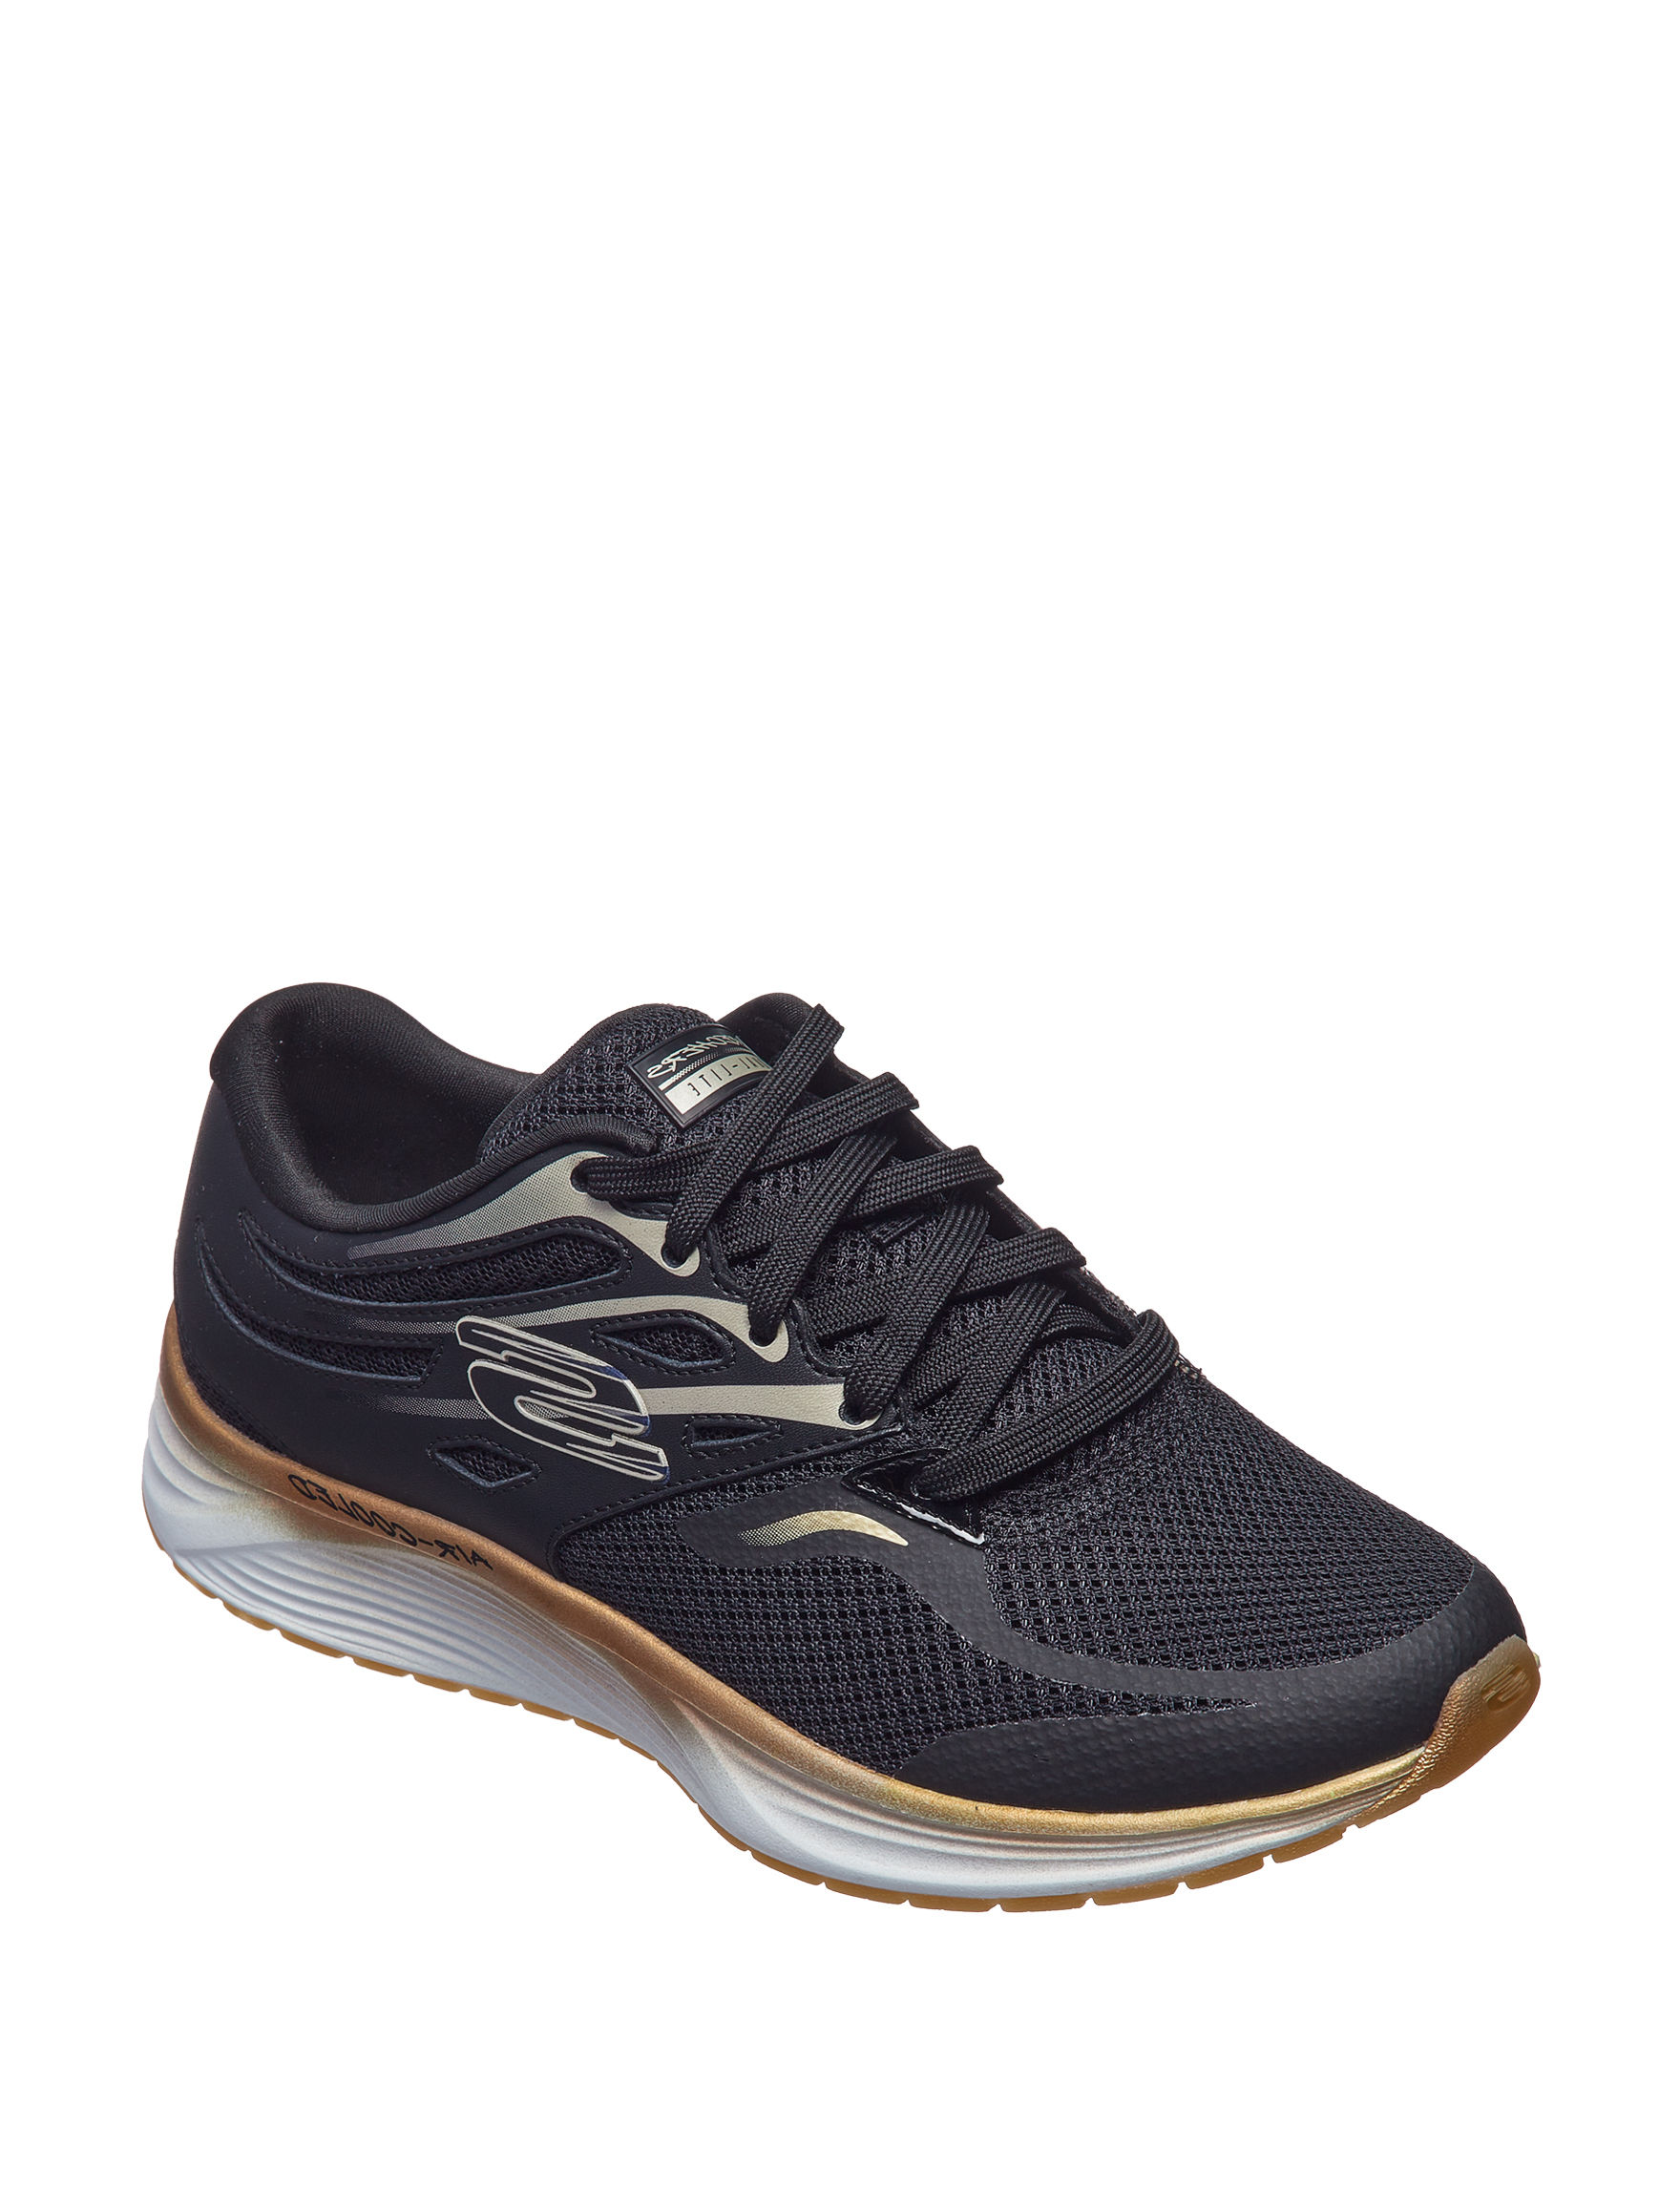 Skechers Black / Gold